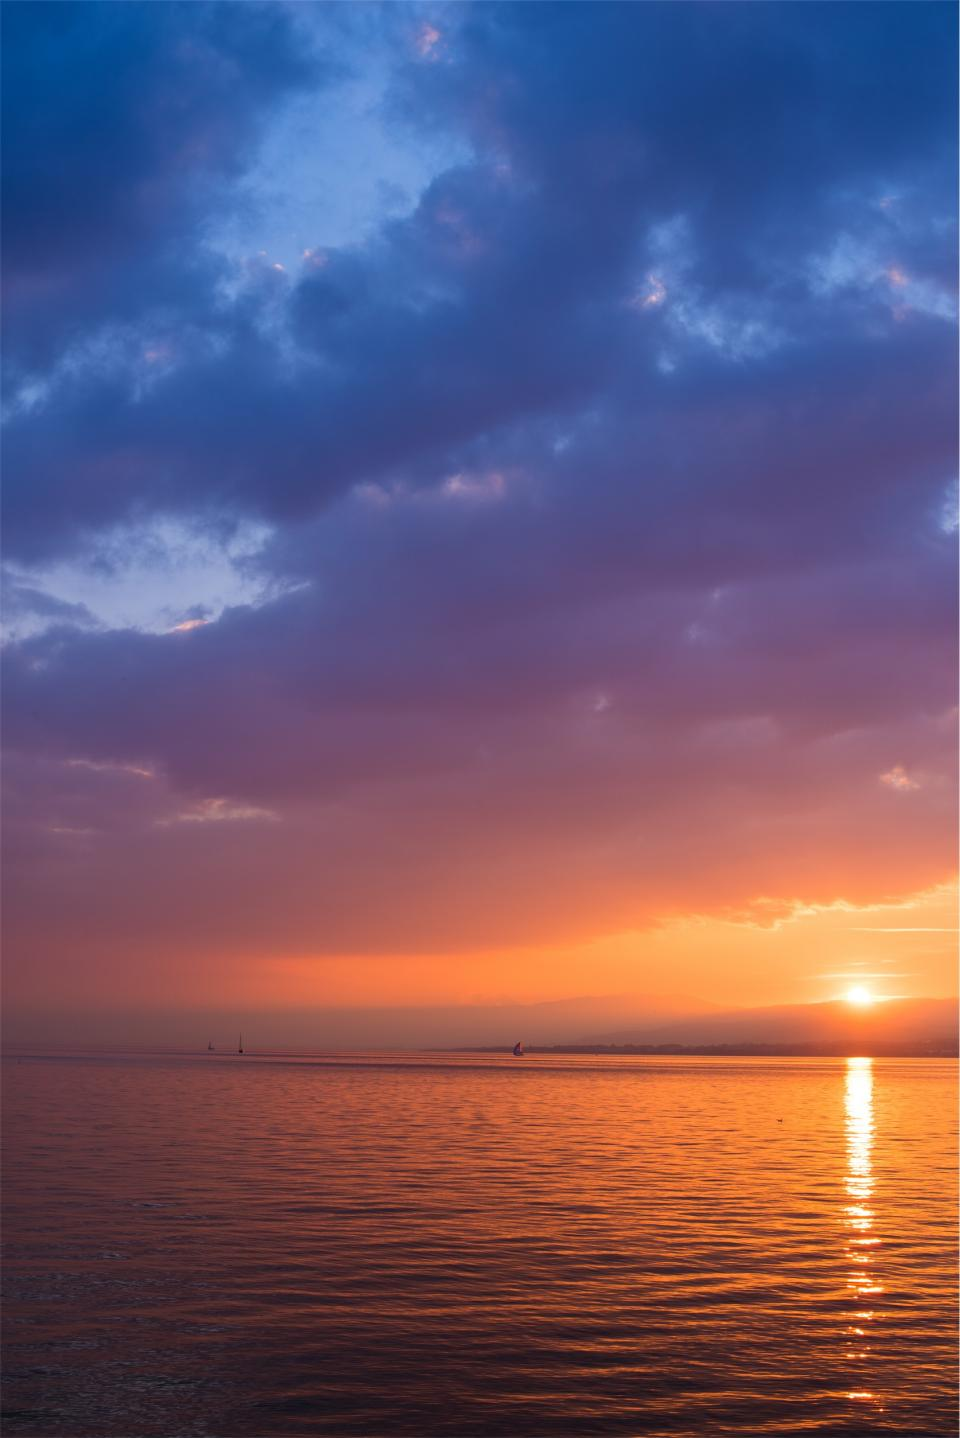 sunset dusk sky clouds purple ocean sea water